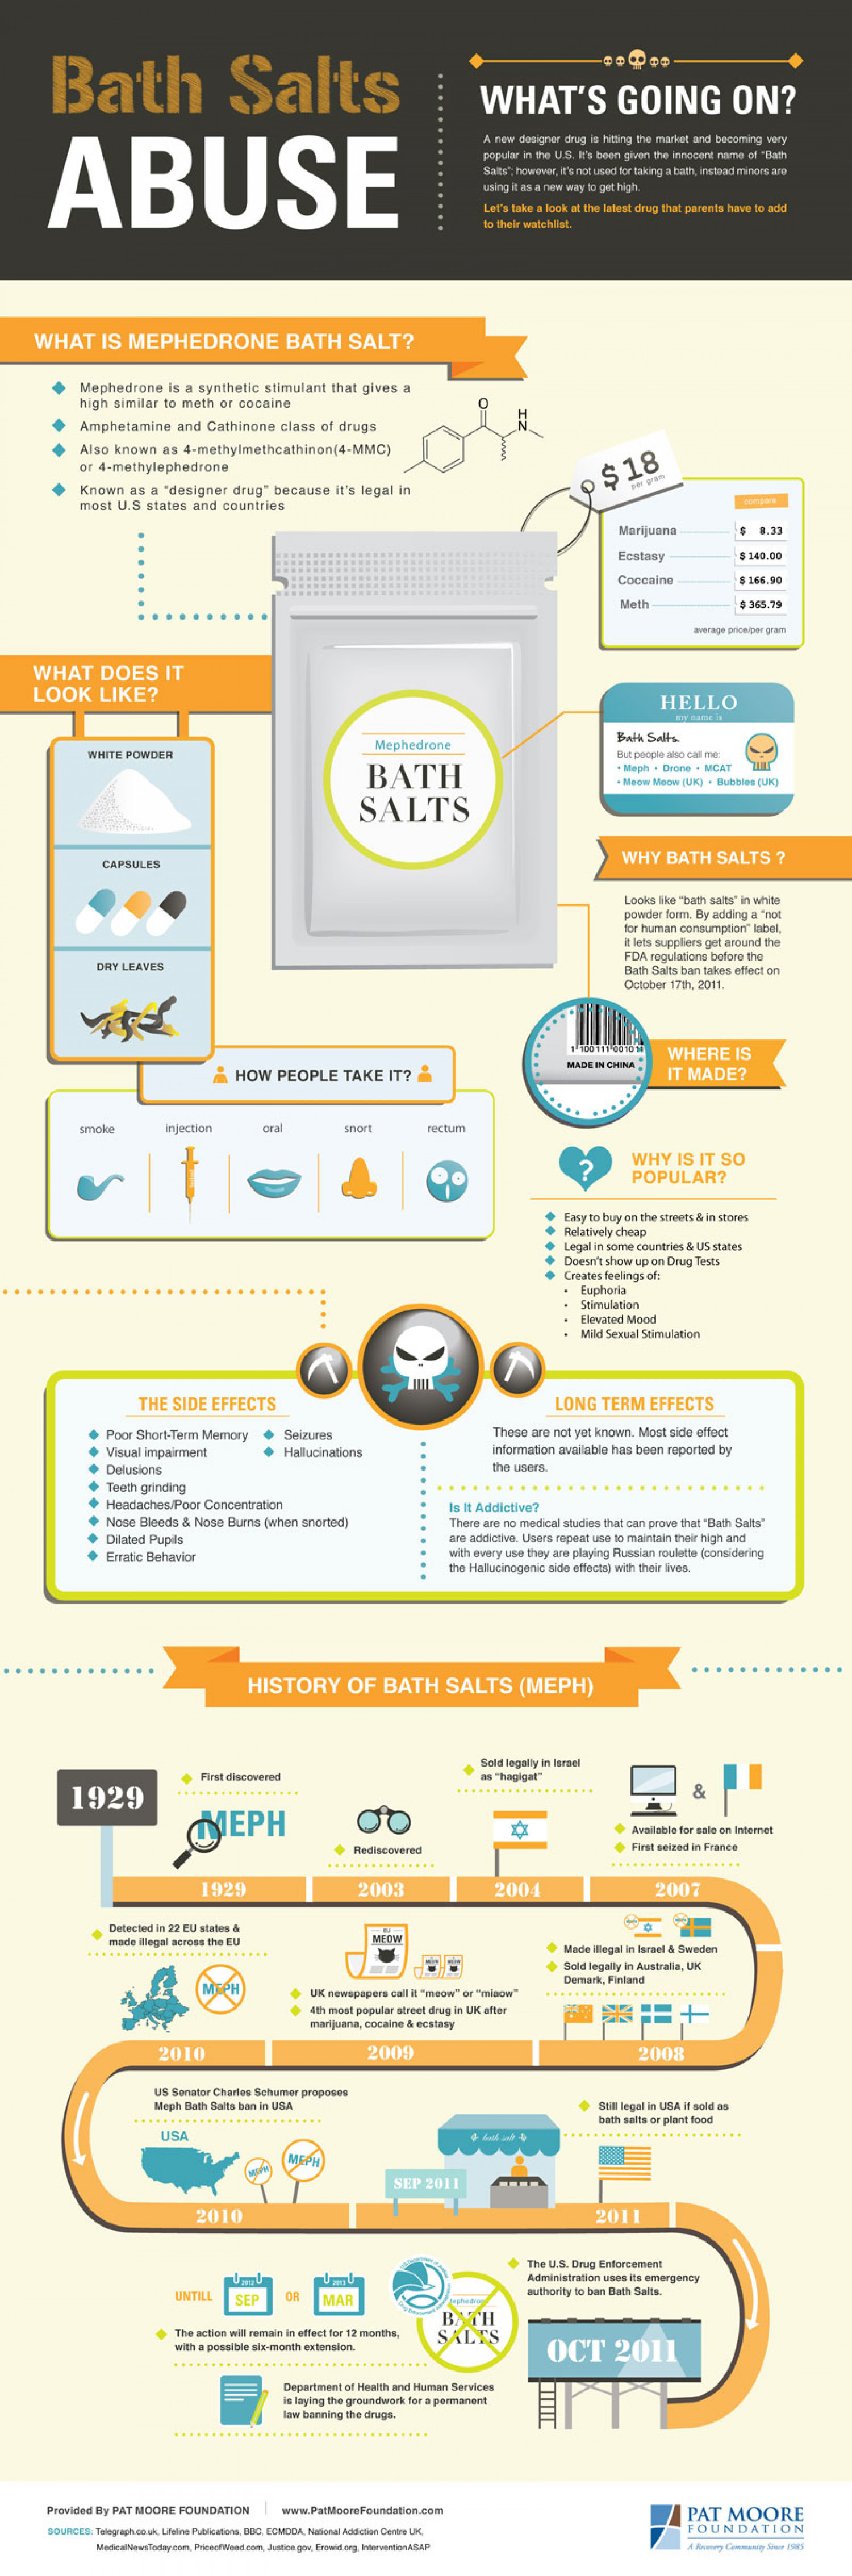 Bath Salts Abuse Infographic